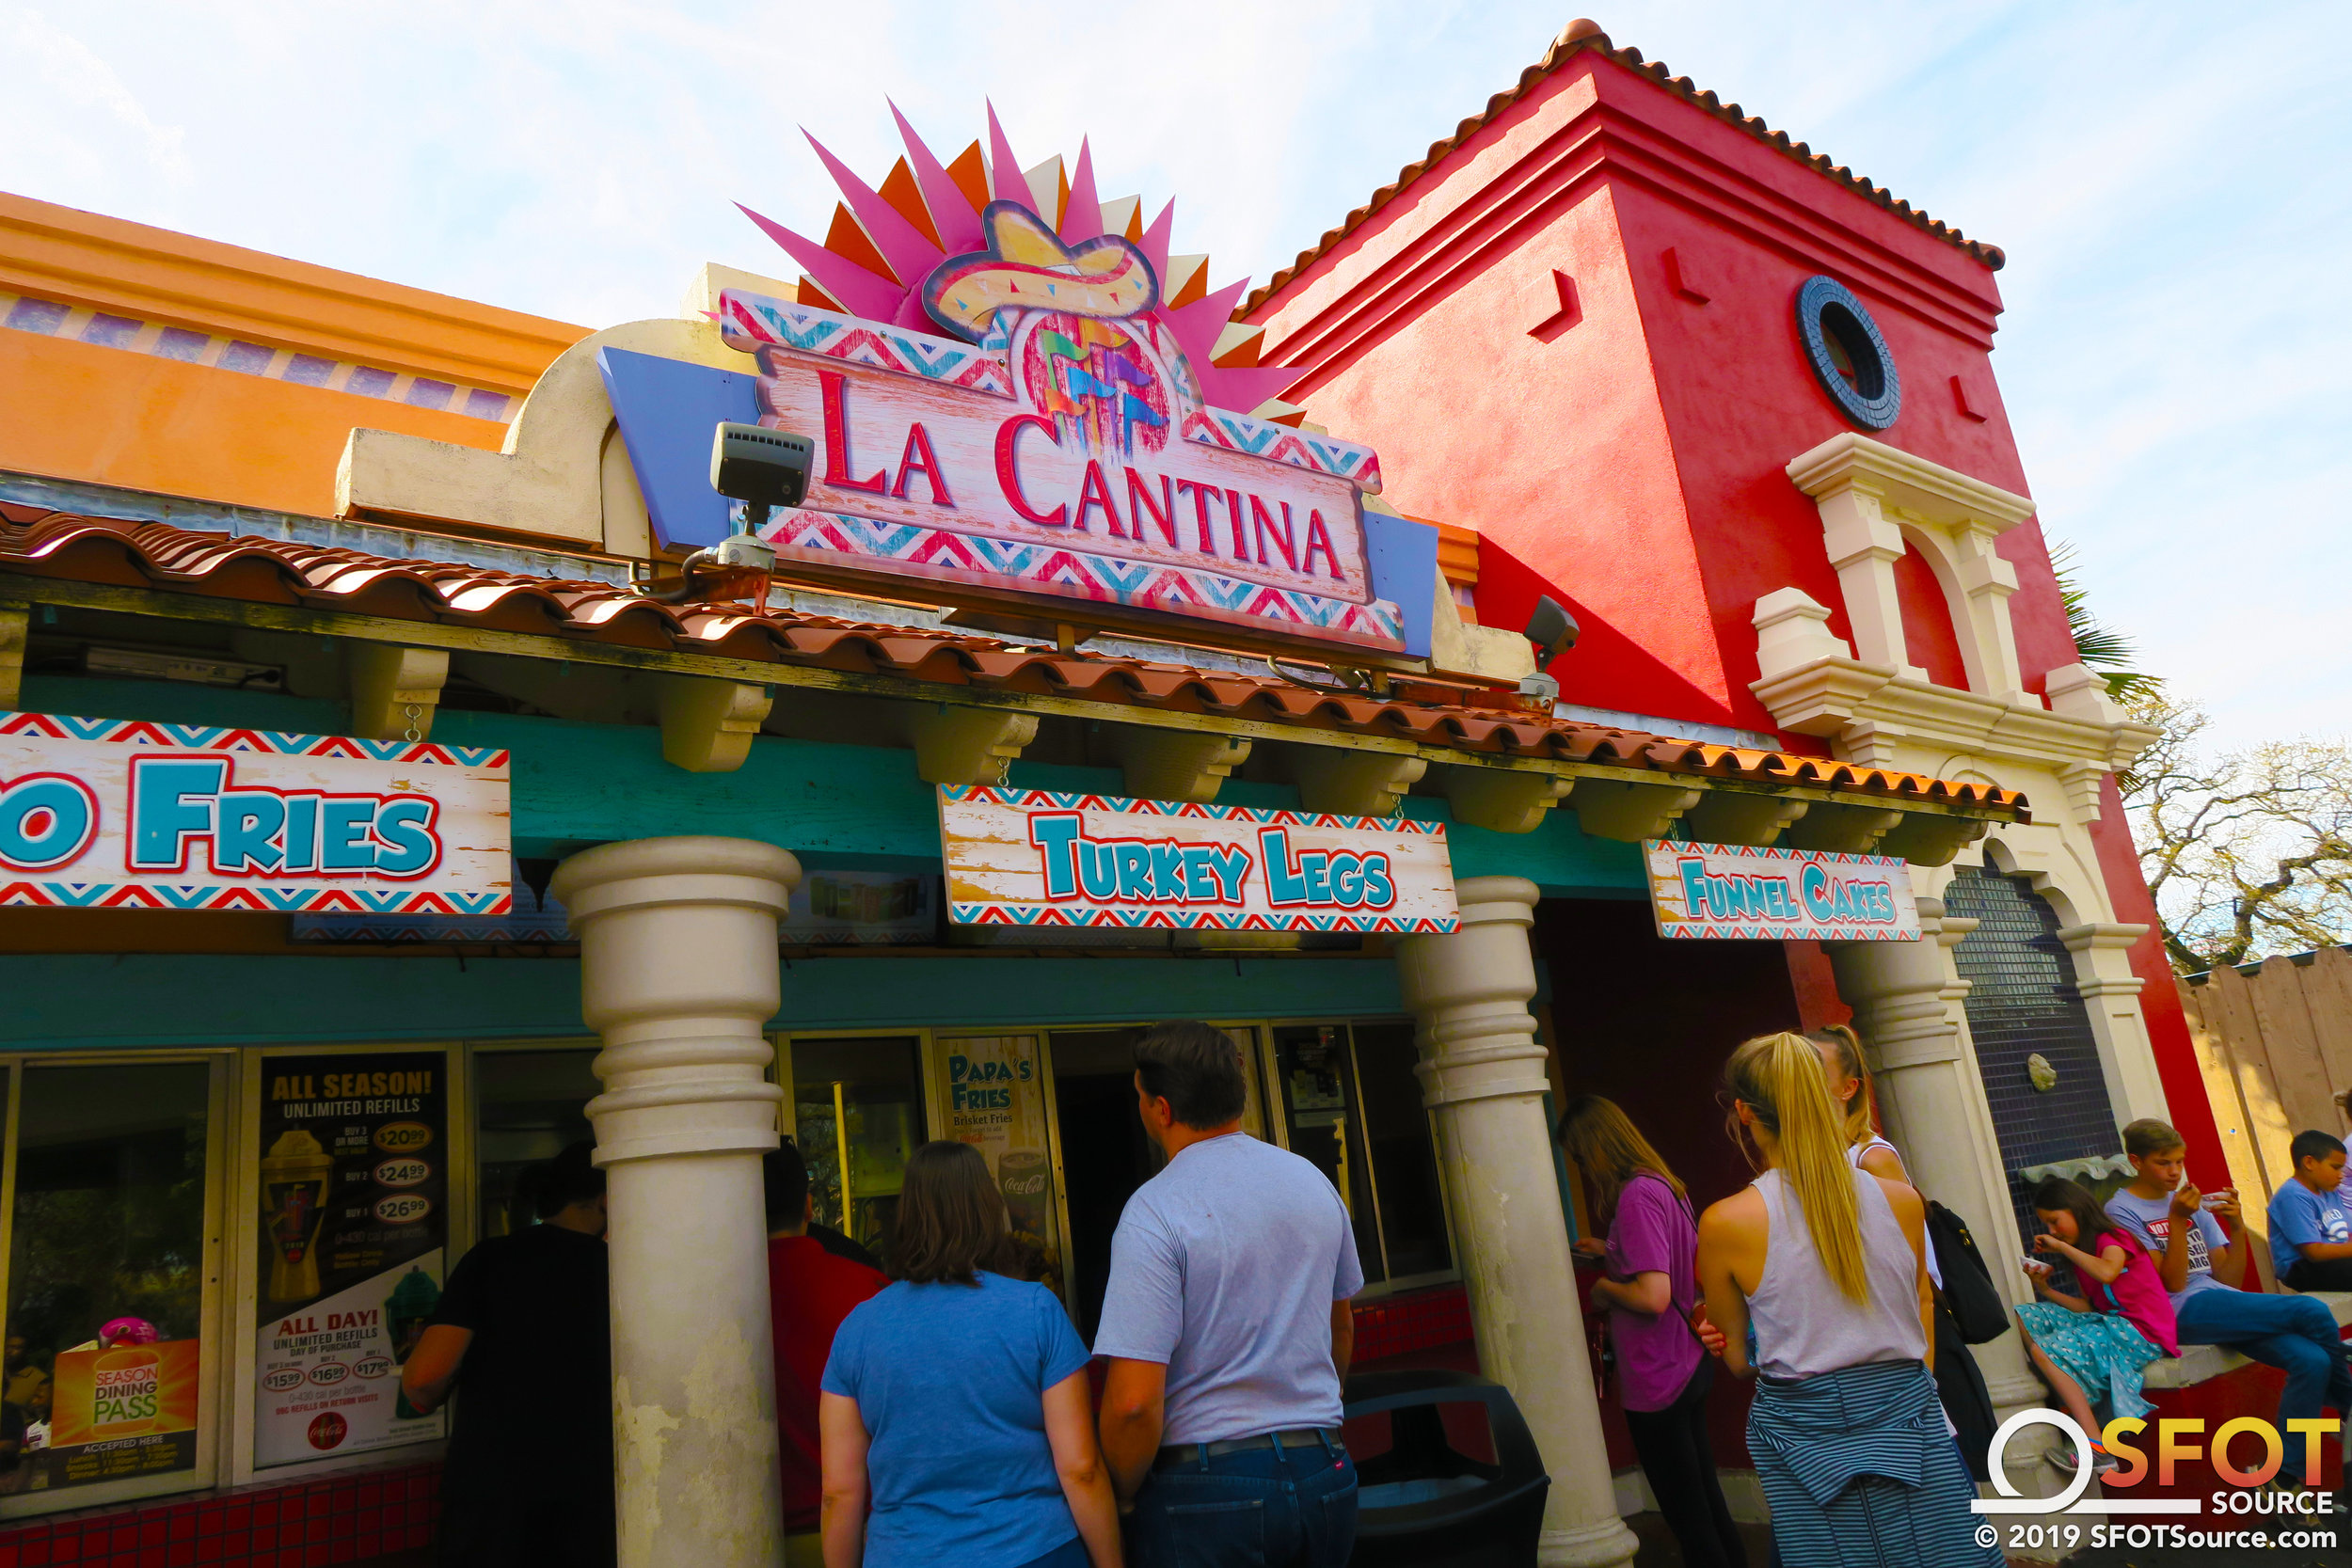 La Cantina is located in the park's Mexico section.